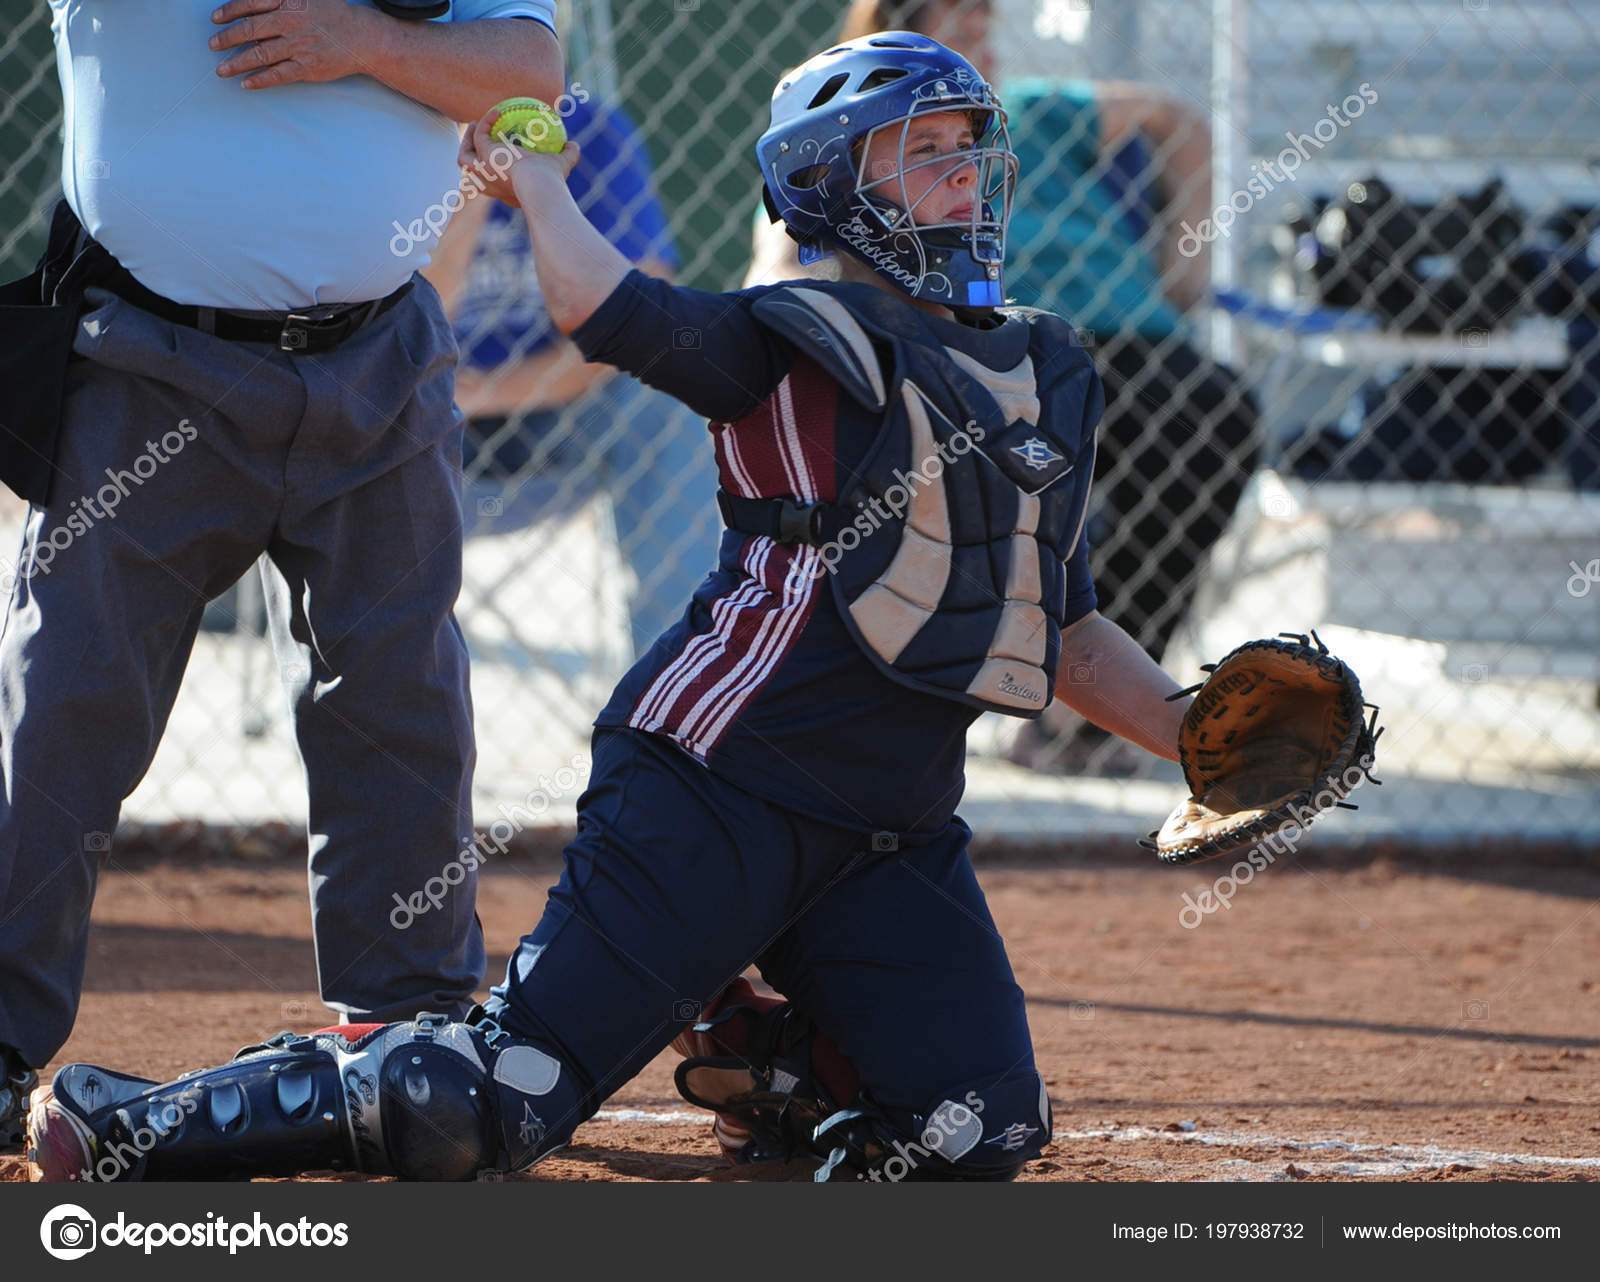 Girls High School Softball Game Action Being Played High